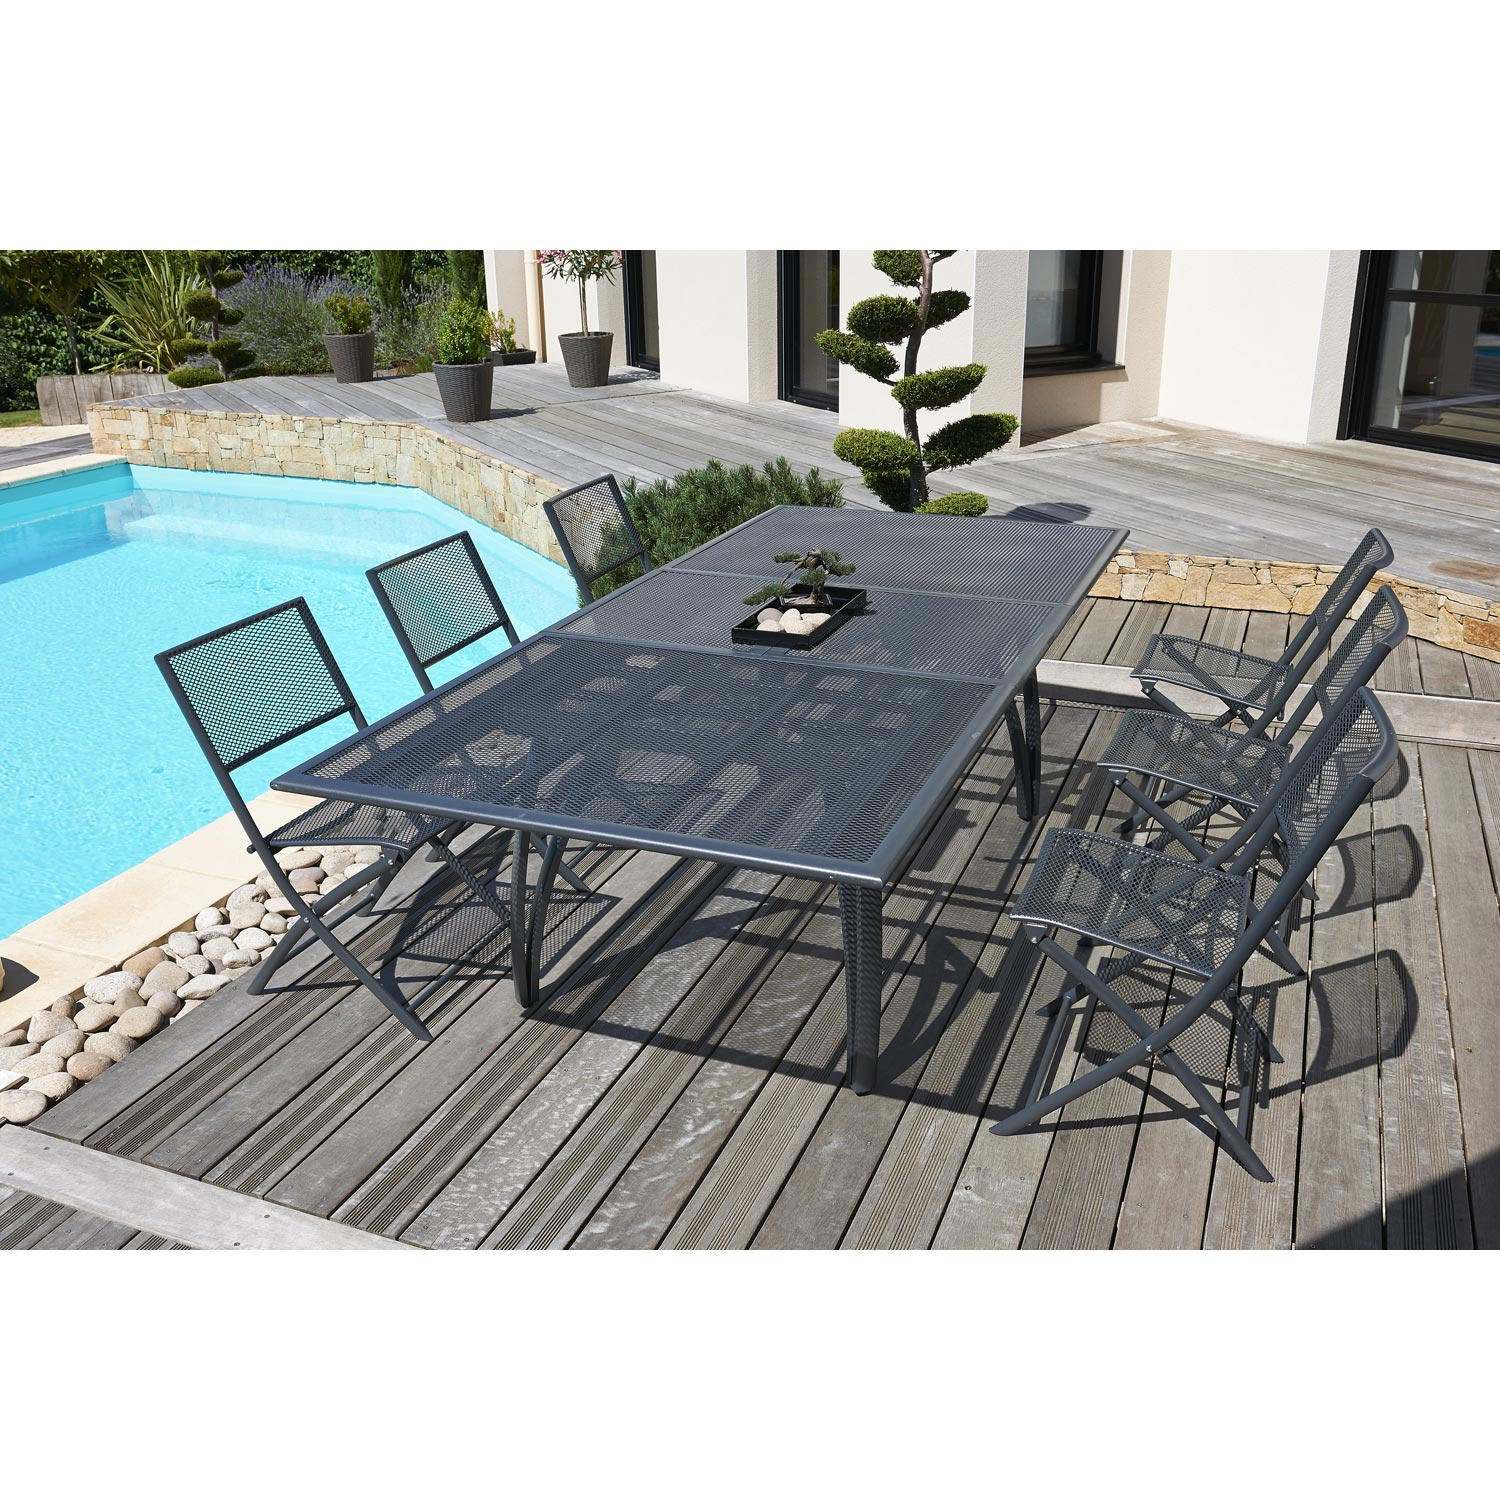 Salon de jardin gris anthracite 6 personnes leroy merlin for Salon jardin pvc gris